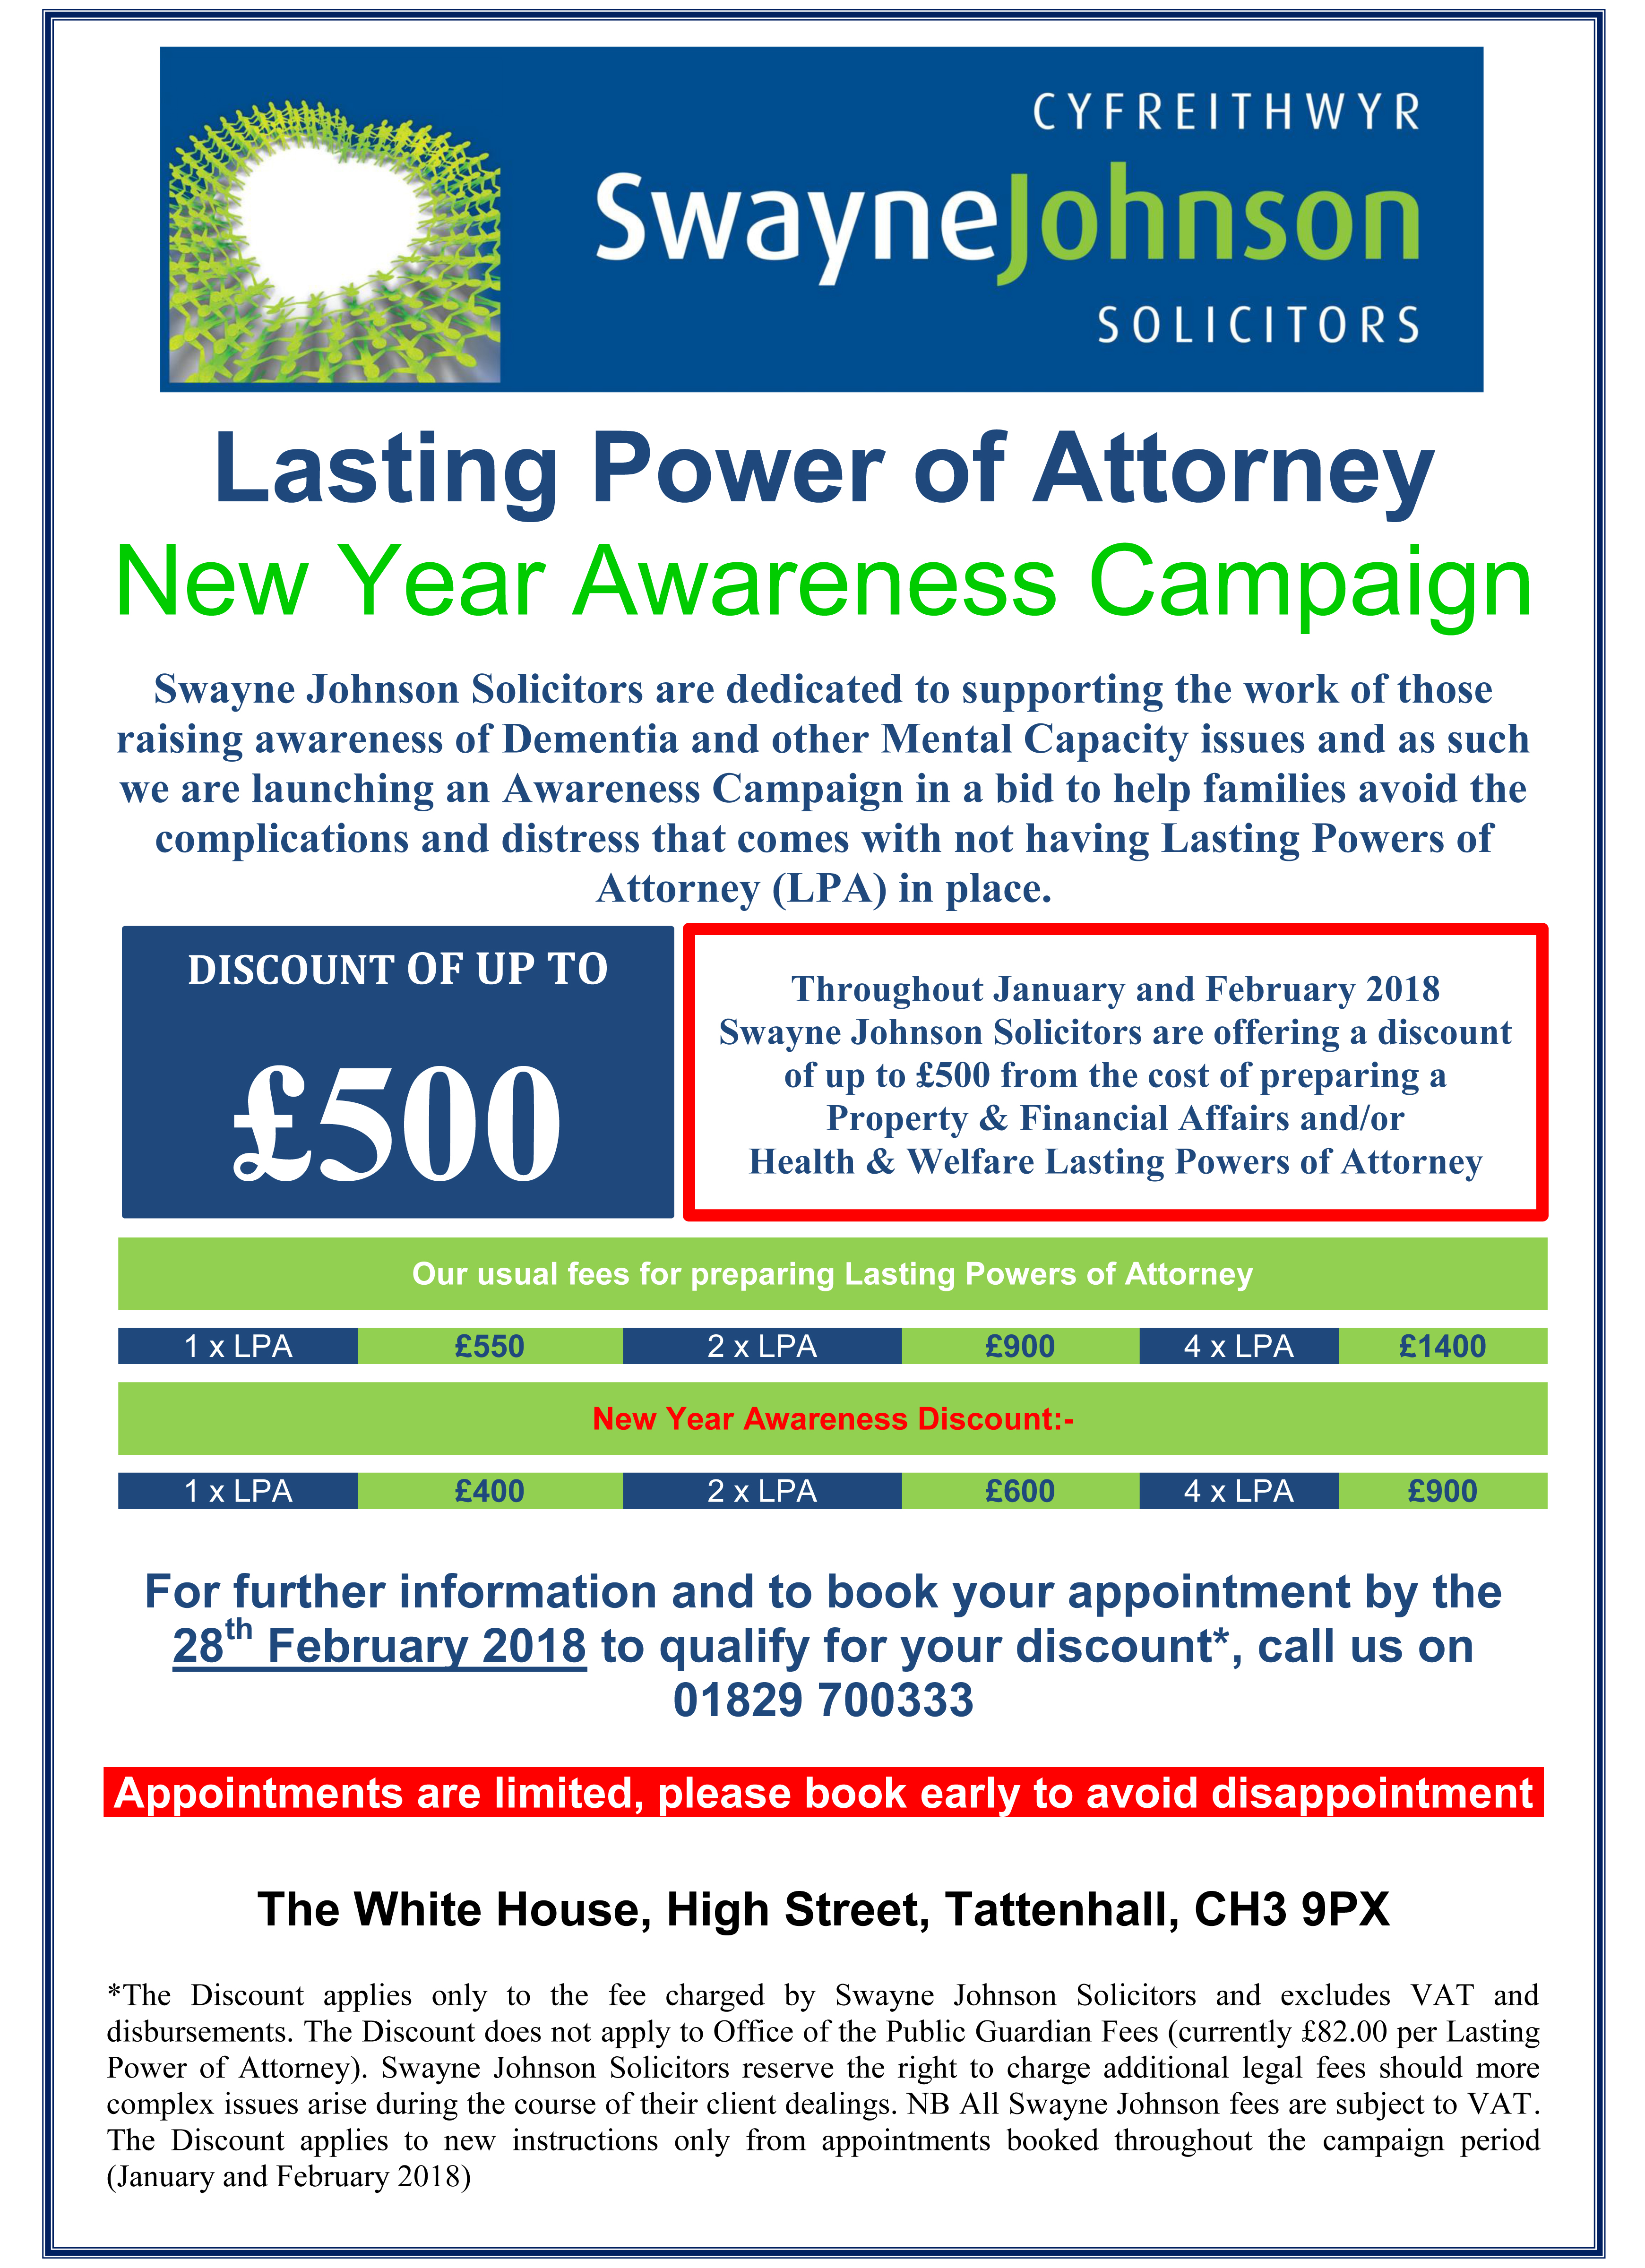 Poster A4  Lasting Power Of Attorney tattenhall January 2018